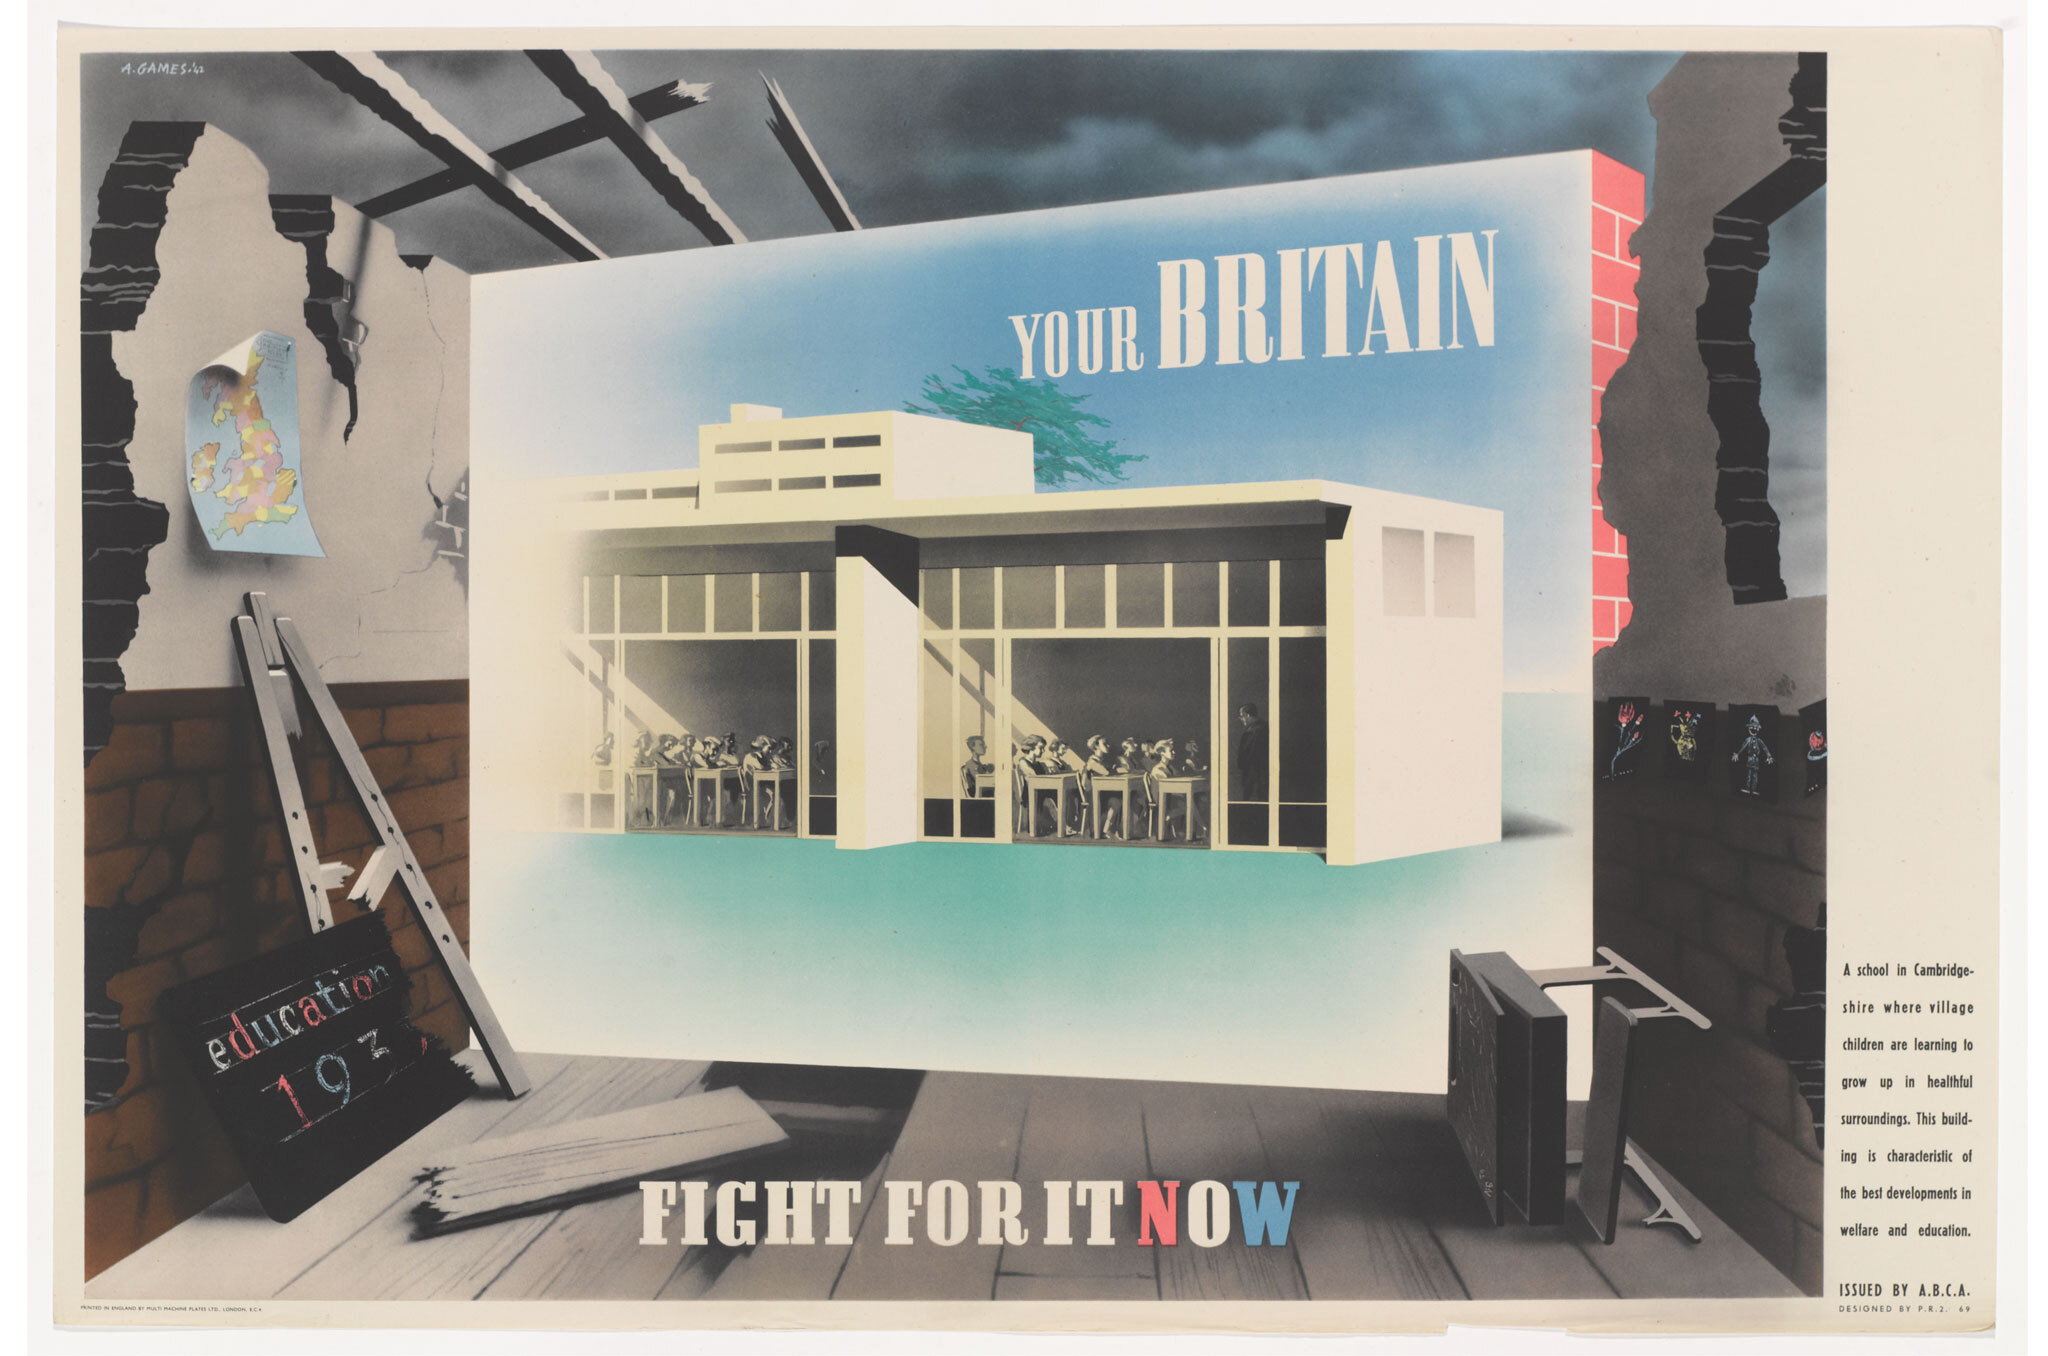 The art of persuasion: Wartime posters by Abram Games